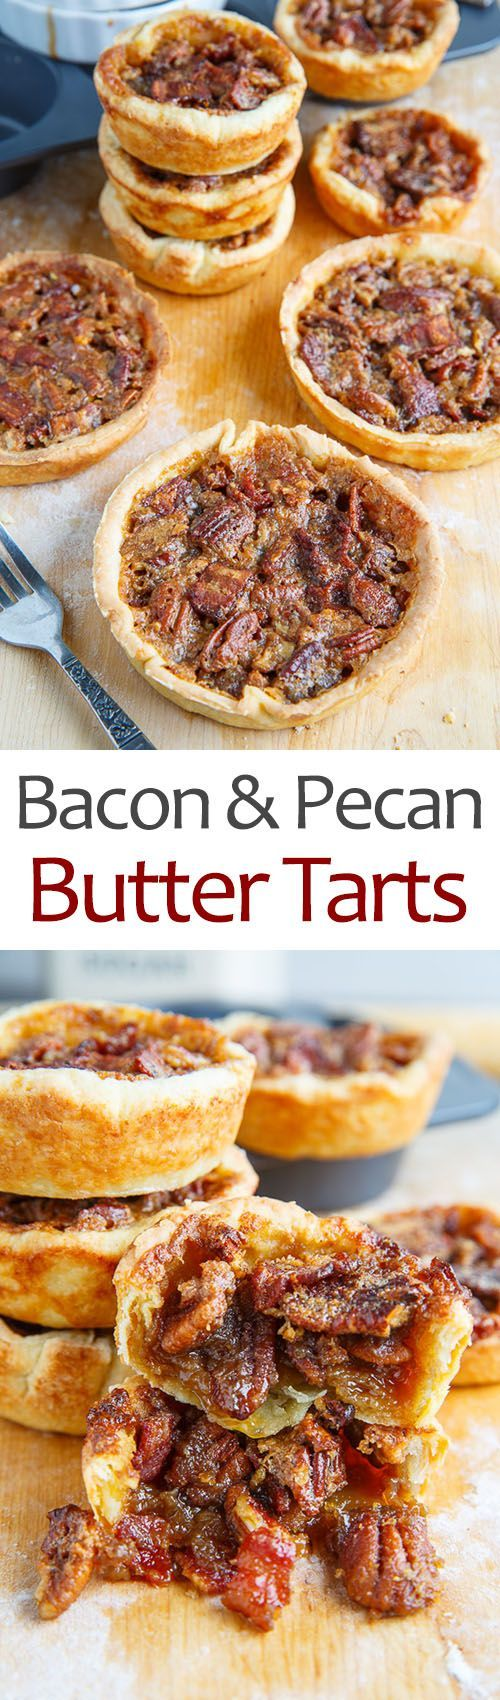 Maple Bourbon Bacon and Pecan Butter Tarts More